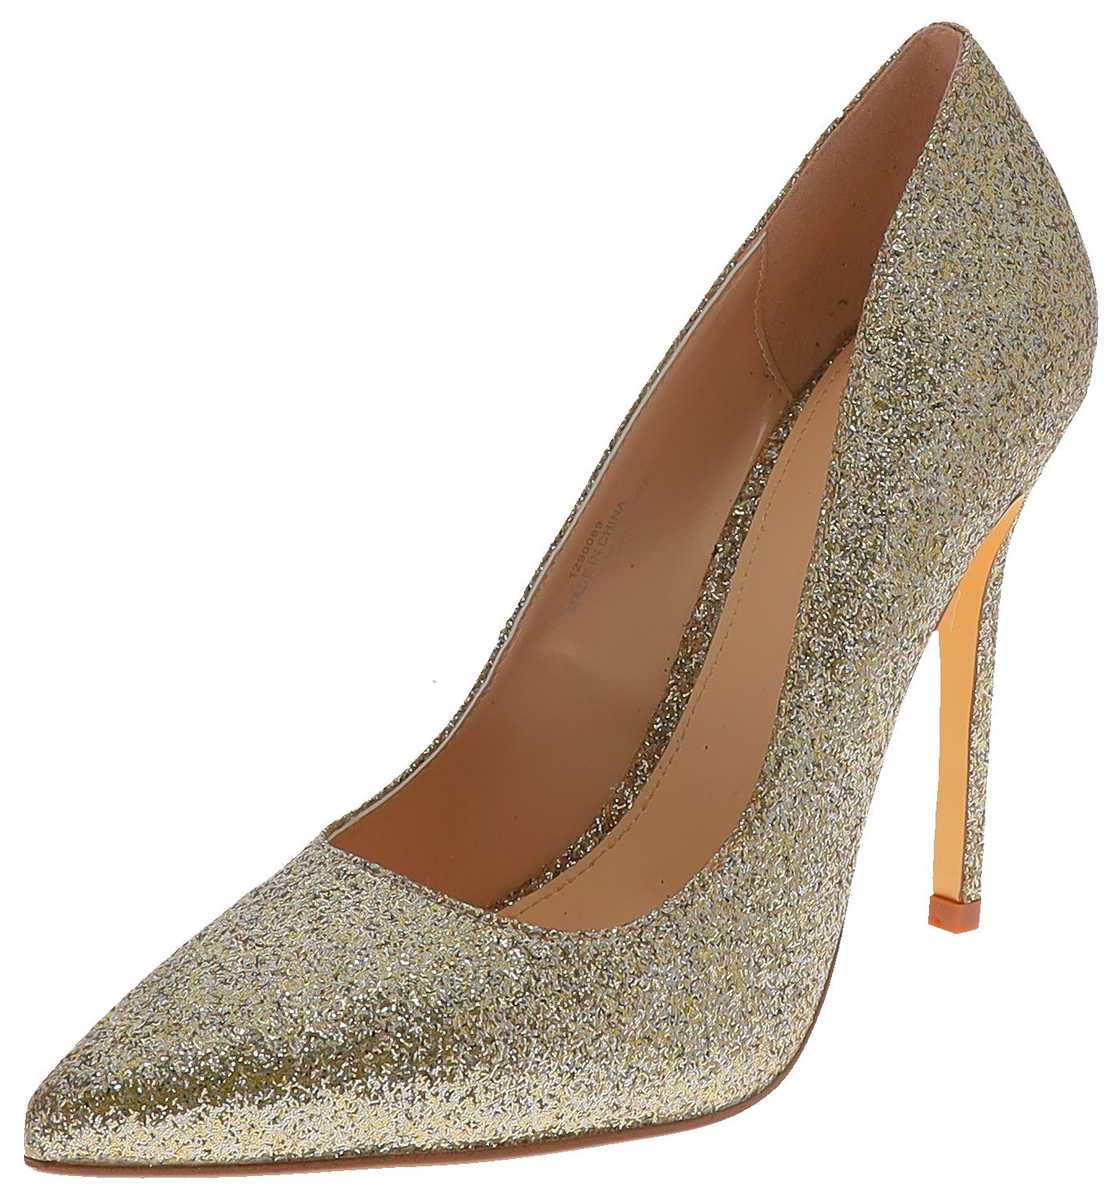 Buffalo AMICA party ladies pumps - gold